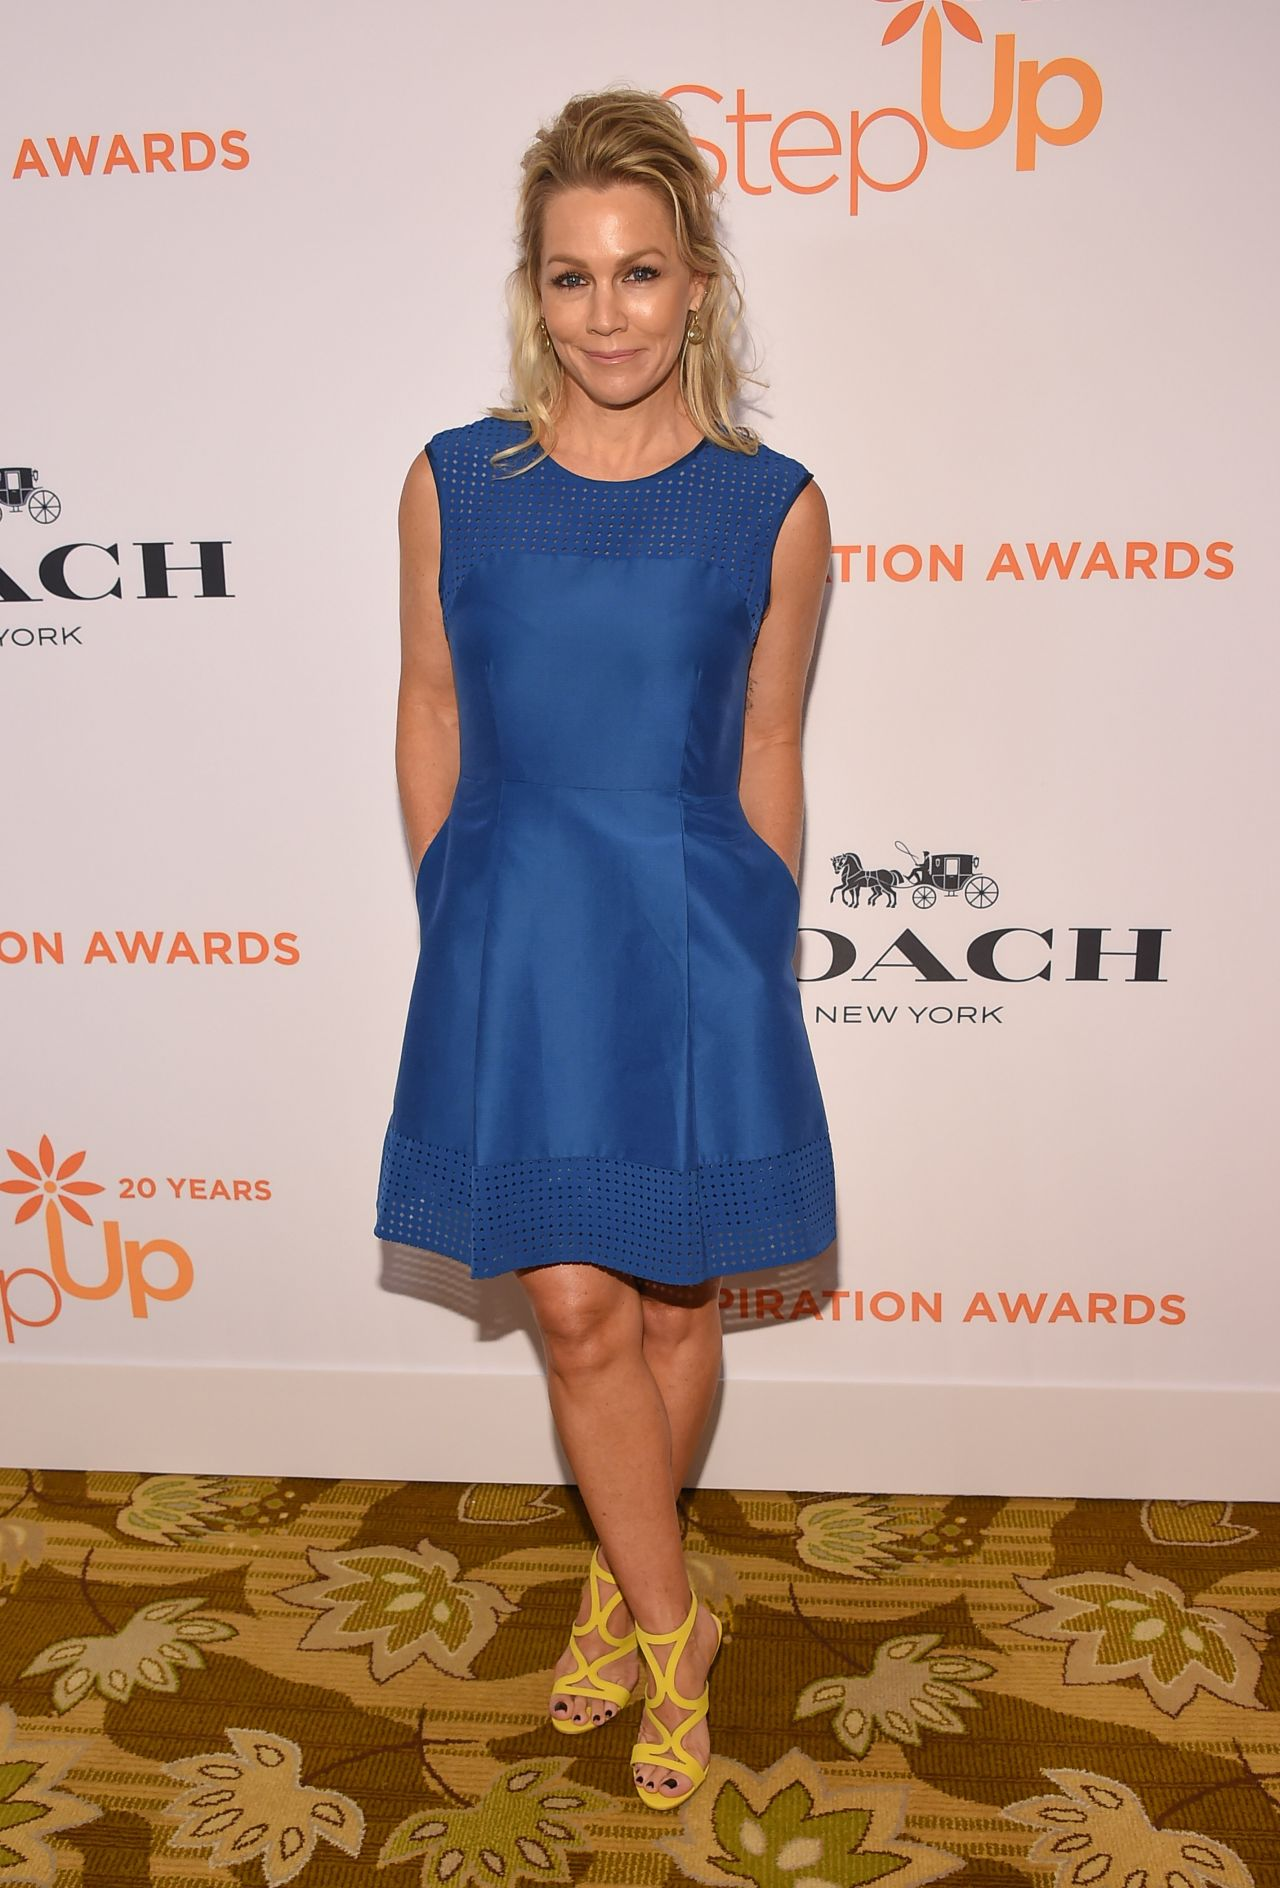 Jennie Garth Step Up S Inspiration Awards In Beverly